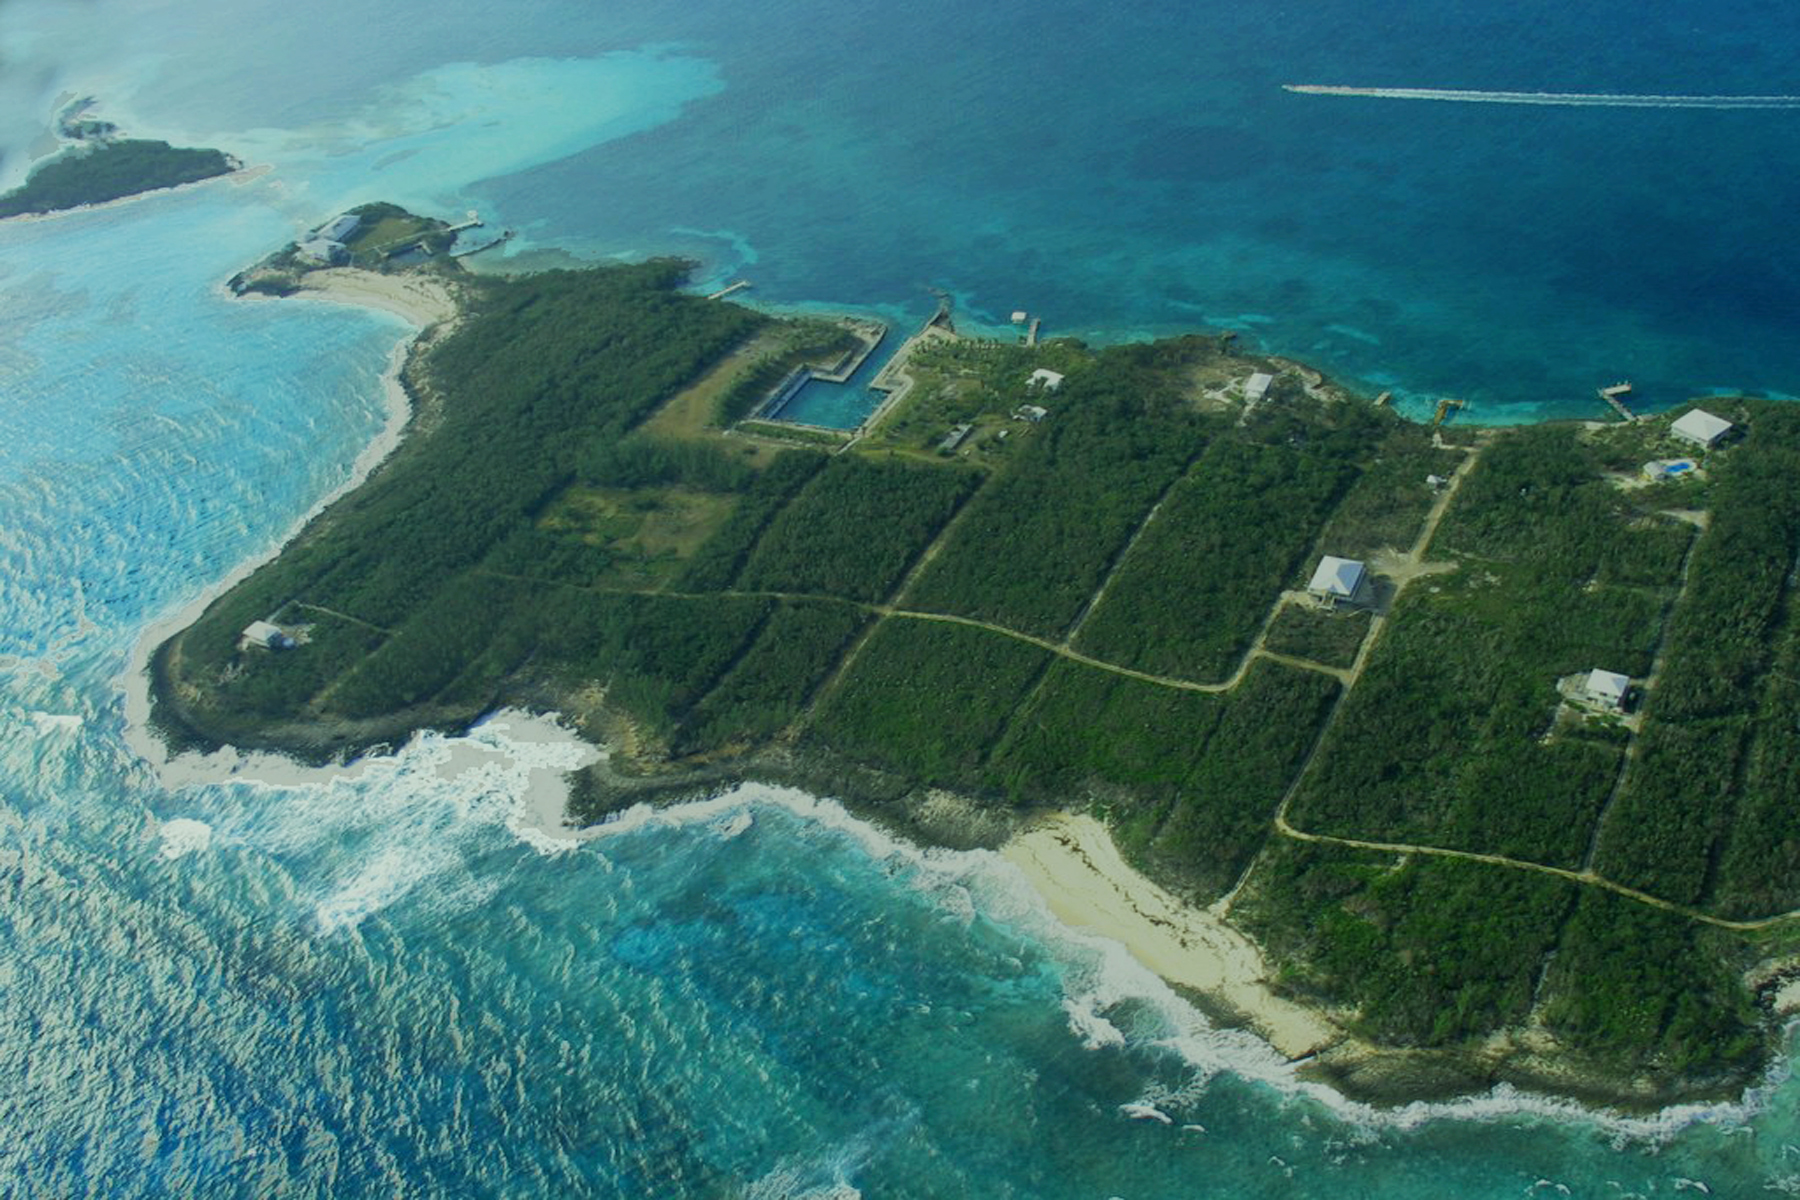 Terreno por un Venta en South End Lot 4 Guana Cay, Abaco Bahamas